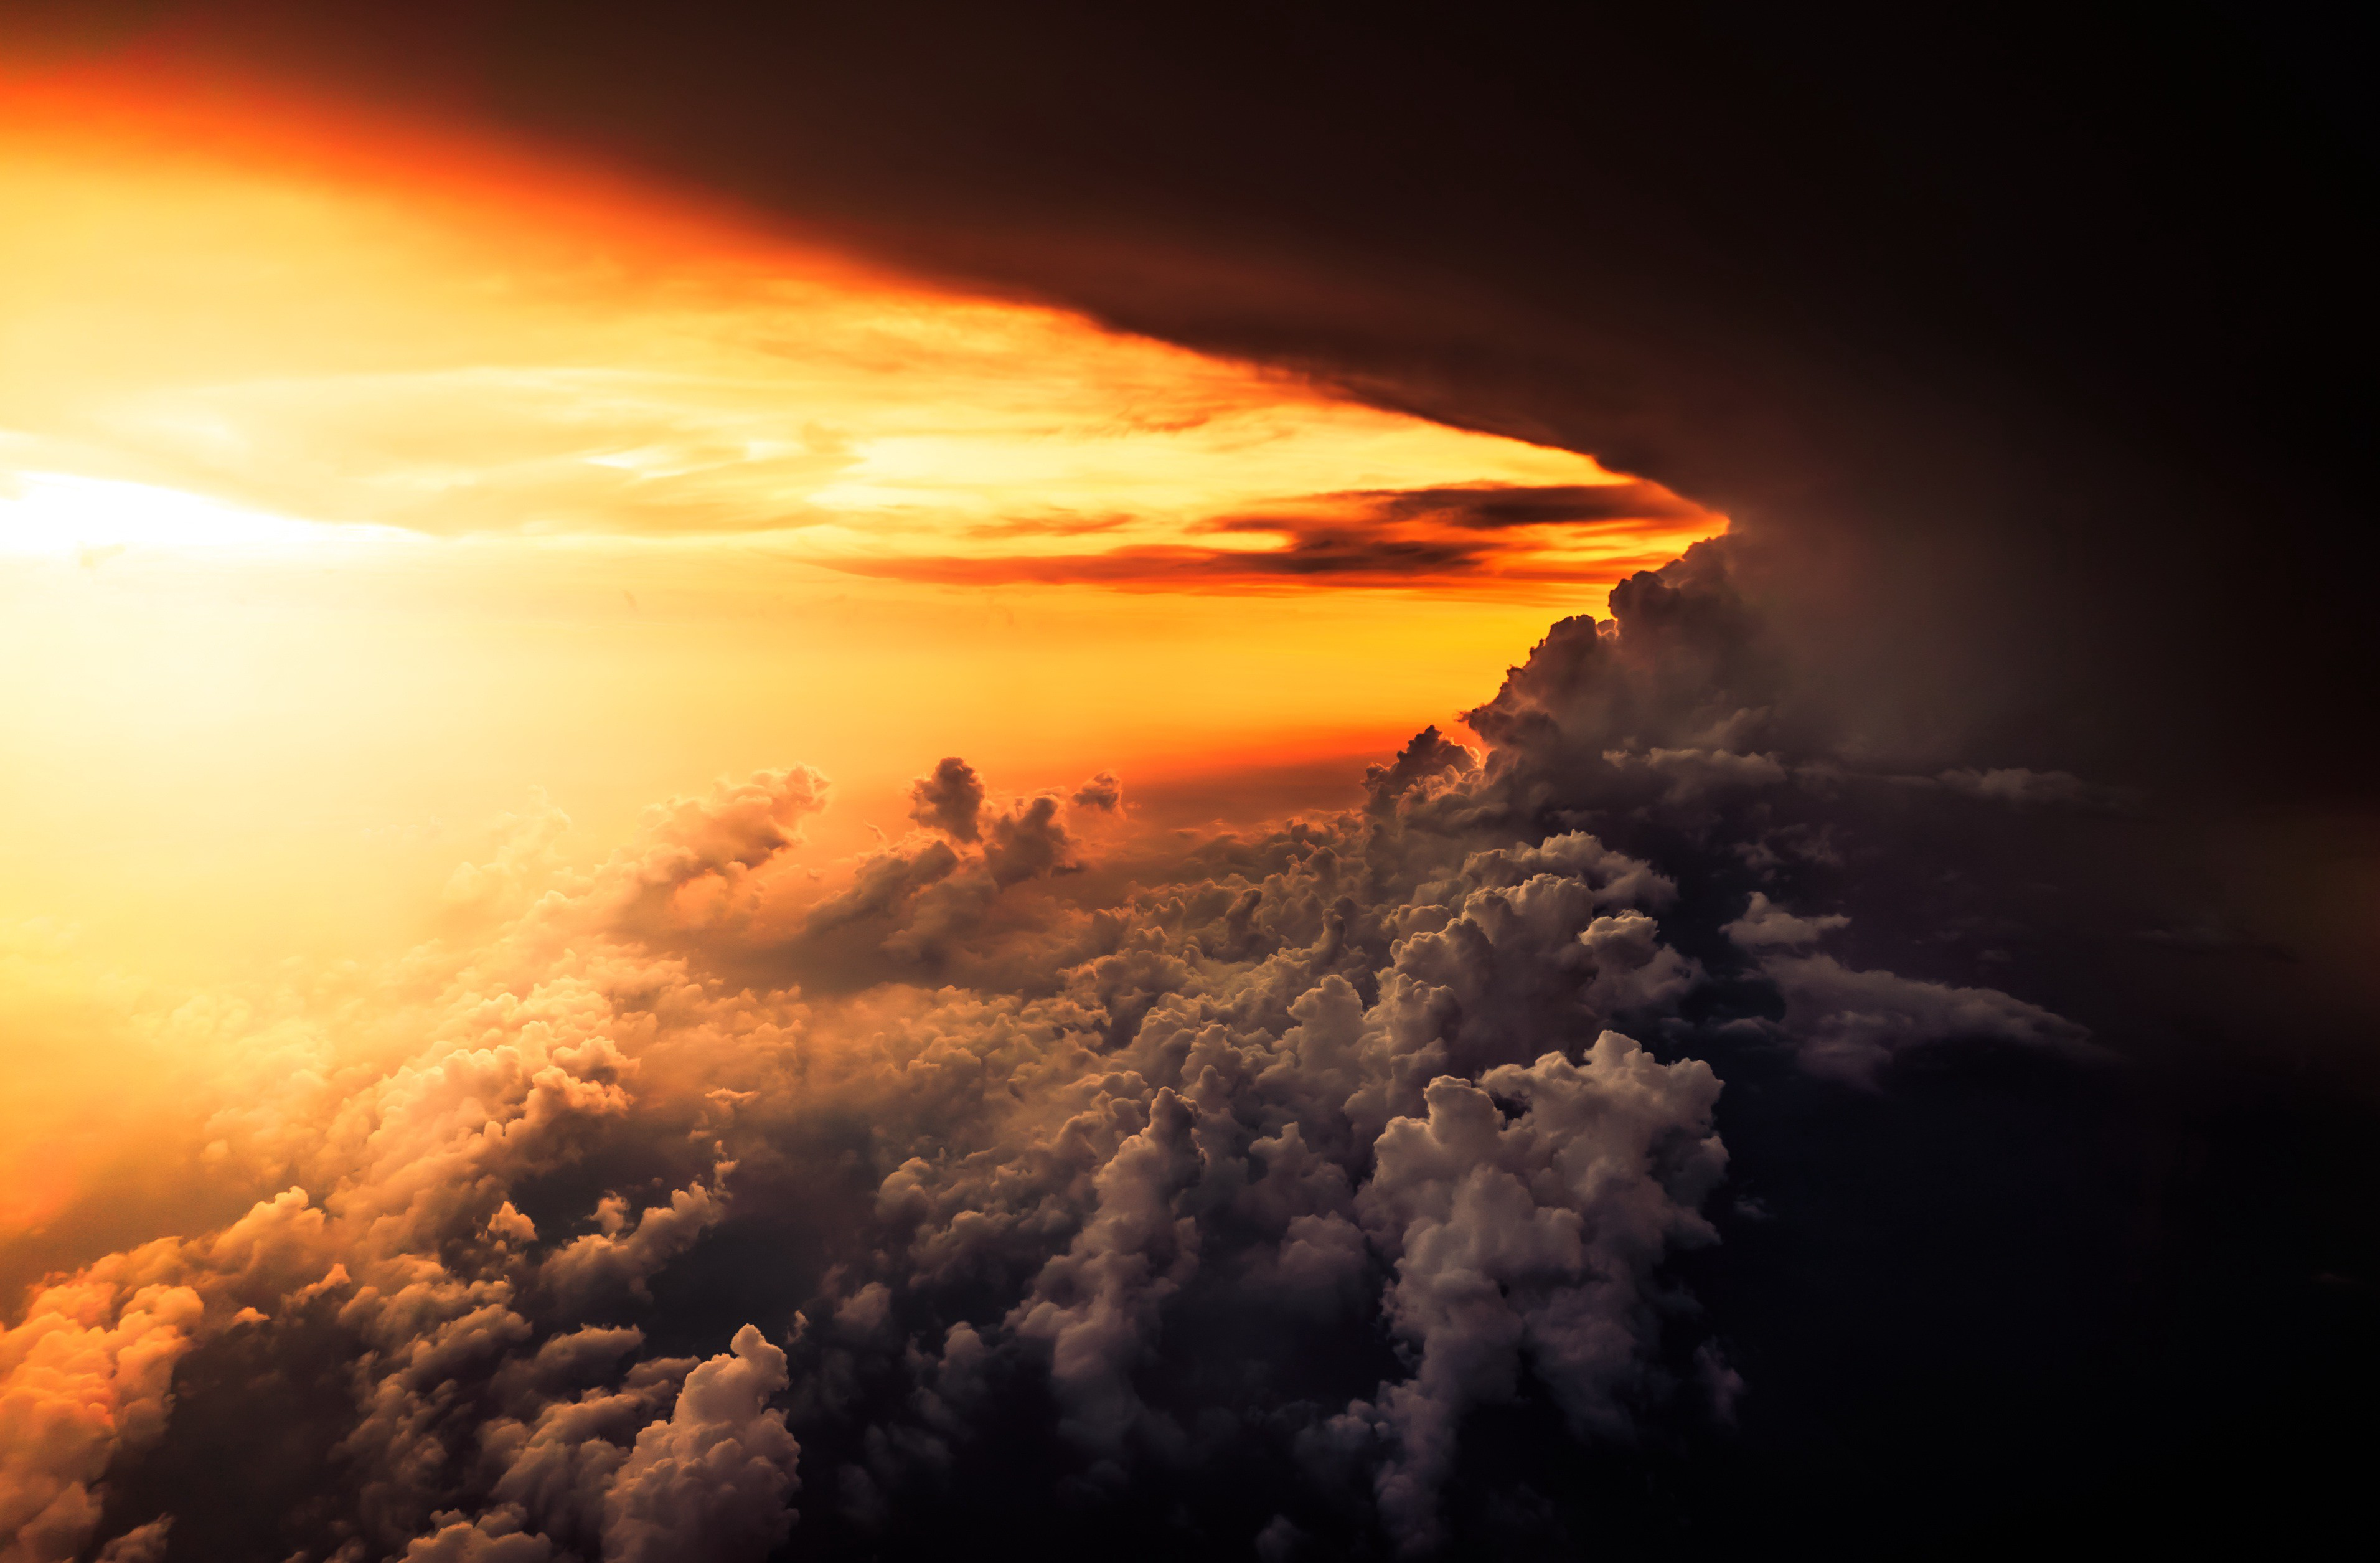 chasing the sunset from the clouds by drew coffman unsplash blog medium chasing the sunset from the clouds by